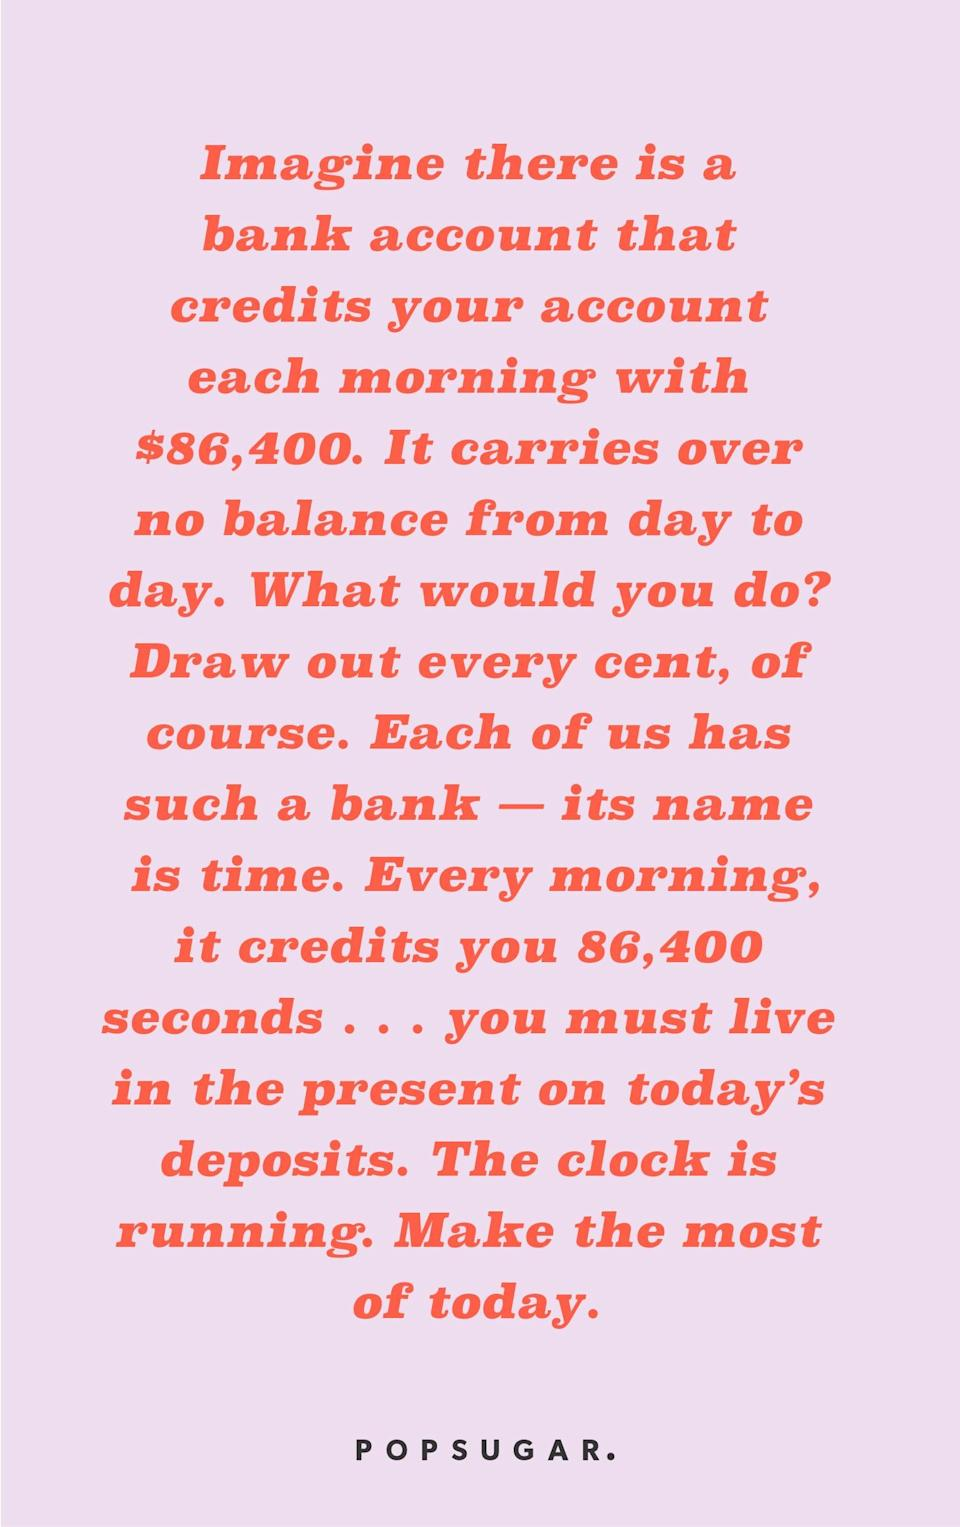 """<p><b>Quote:</b></p> <p>""""Imagine there is a bank account that credits your account each morning with $86,400. It carries over no balance from day to day. Every evening the bank deletes whatever part of the balance you failed to used during the day. What would you do? Draw out every cent, of course? Each of us has such a bank, its name is time. Every morning, it credits you 86,400 seconds. Every night it writes off at a lost, whatever of this you failed to invest to a good purpose. It carries over no balance. It allows no over draft. Each day it opens a new account for you. Each night it burns the remains of the day. If you fail to use the day's deposits, the loss is yours. There is no drawing against 'tomorrow.' You must live in the present on today's deposits. Invest it so as to get from it the utmost in health, happiness, and health. The clock is running. Make the most of today.""""</p> <p><strong>Lesson to learn:</strong></p> <p>Make the most of the time you have, because you can never get it back.</p>"""